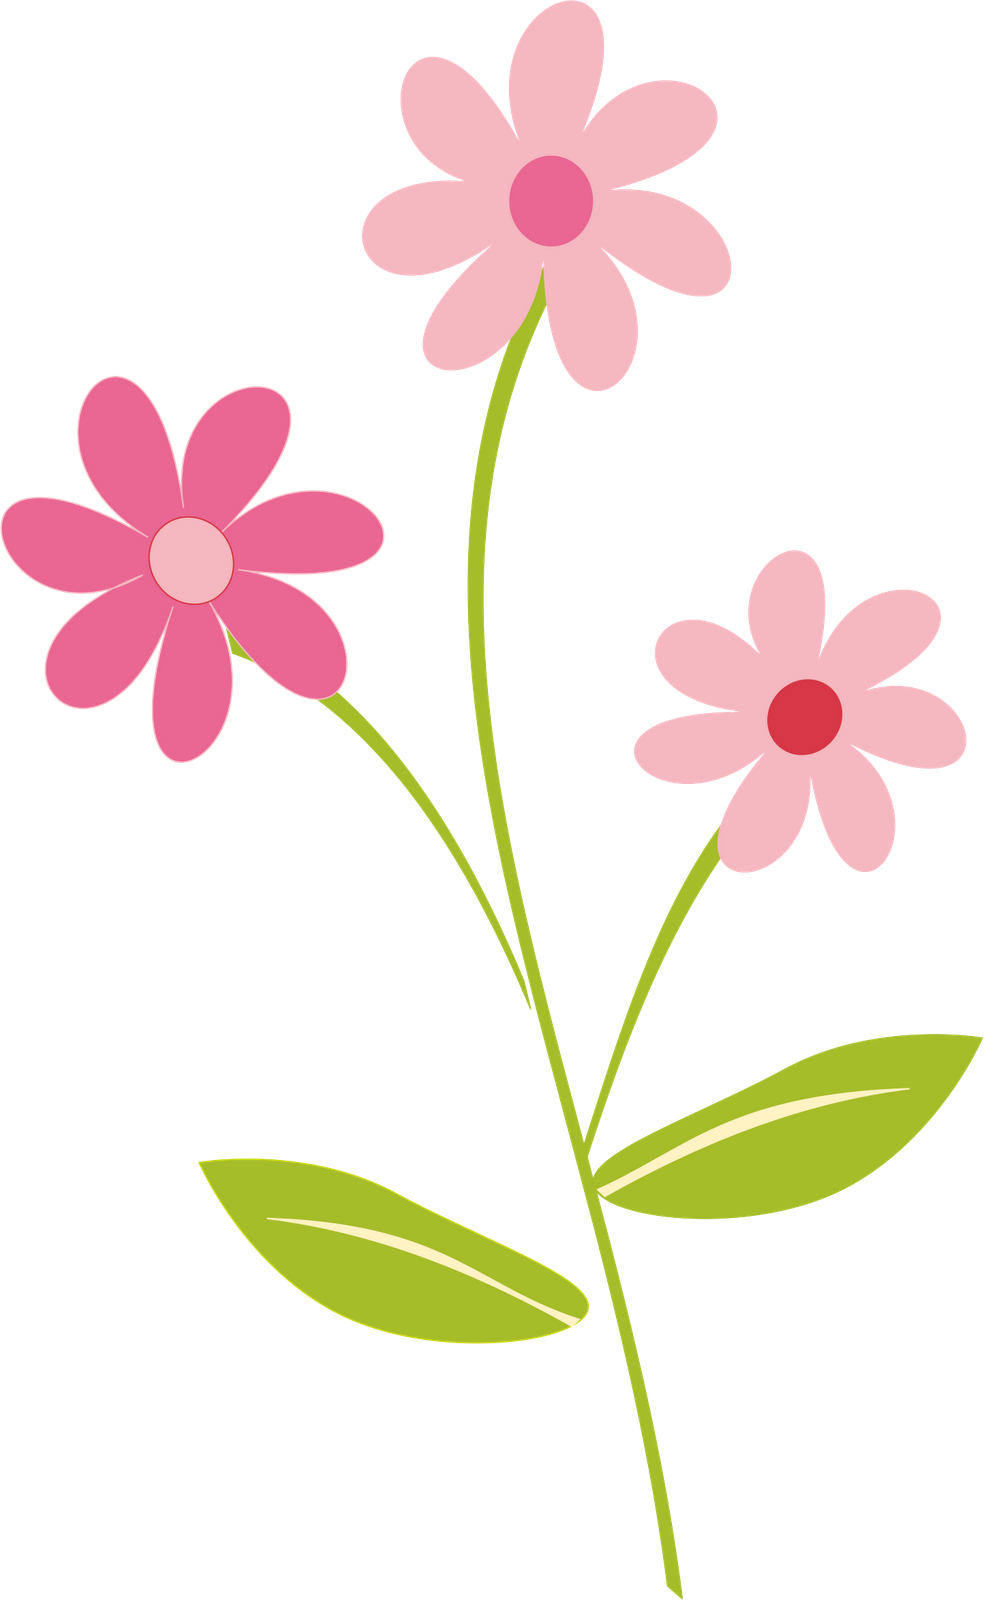 Flowers Clipart Png - Flowers Clipart Png (84+ images in Collection) Page 1